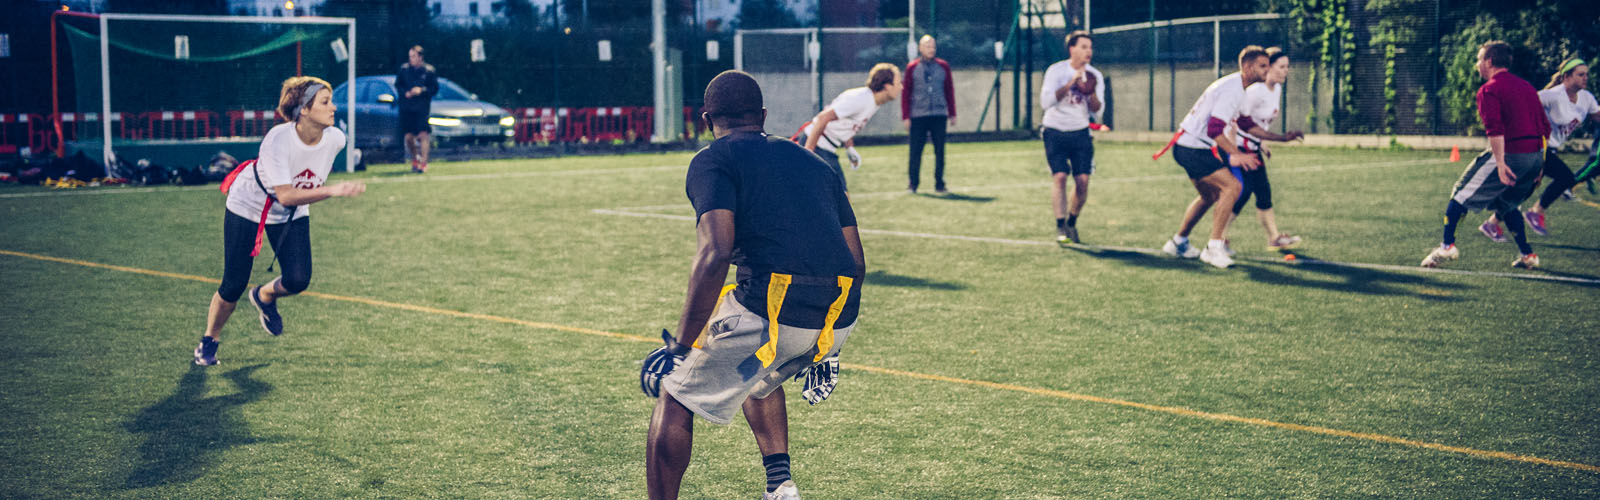 American flag football london